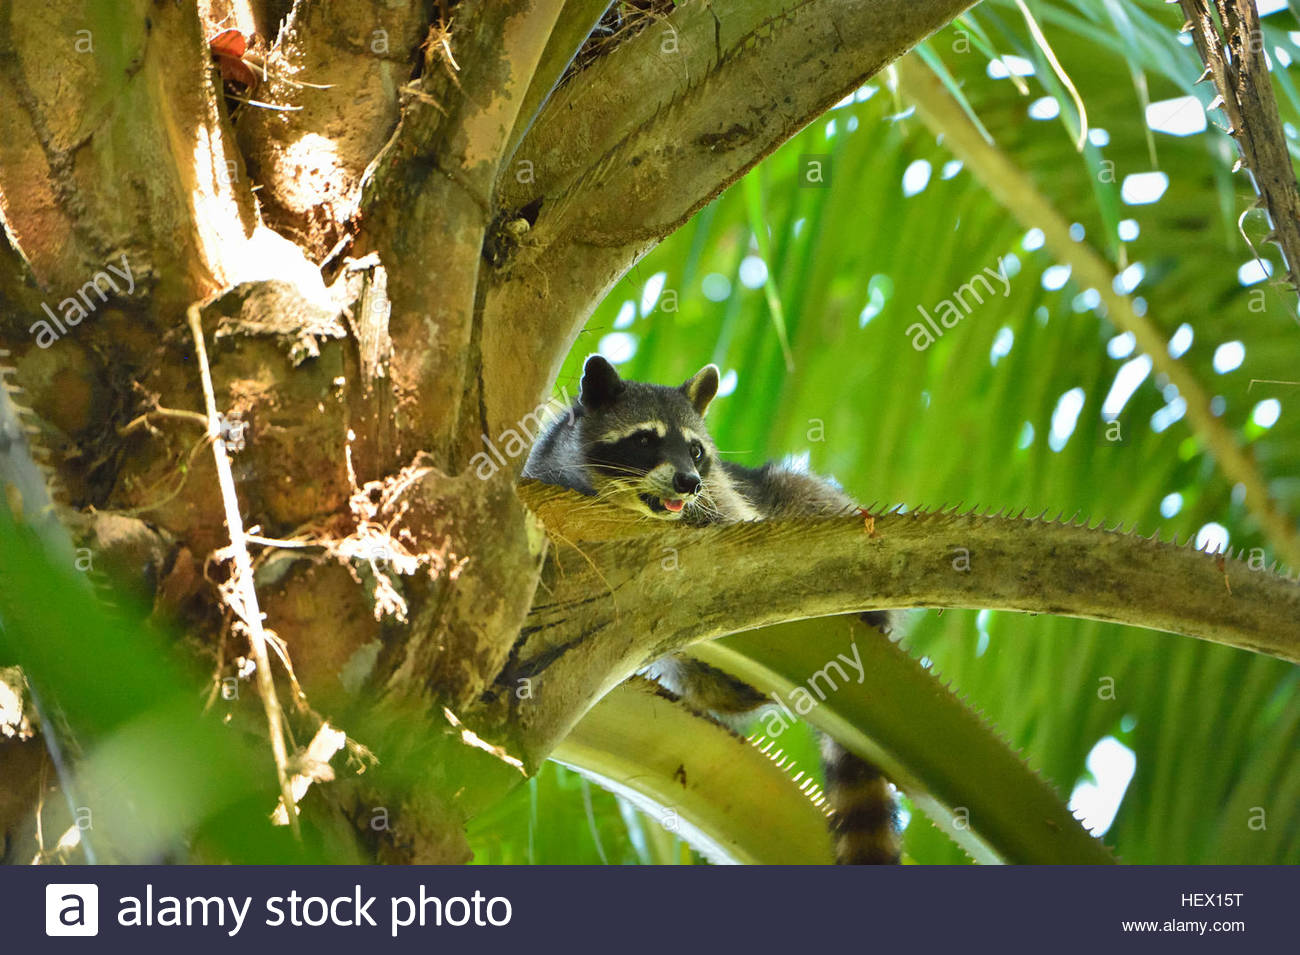 A raccoon (Procyon lotor) panting in a palm tree in Manuel Antonio National Park, one of the smallest and most visited - Stock Image